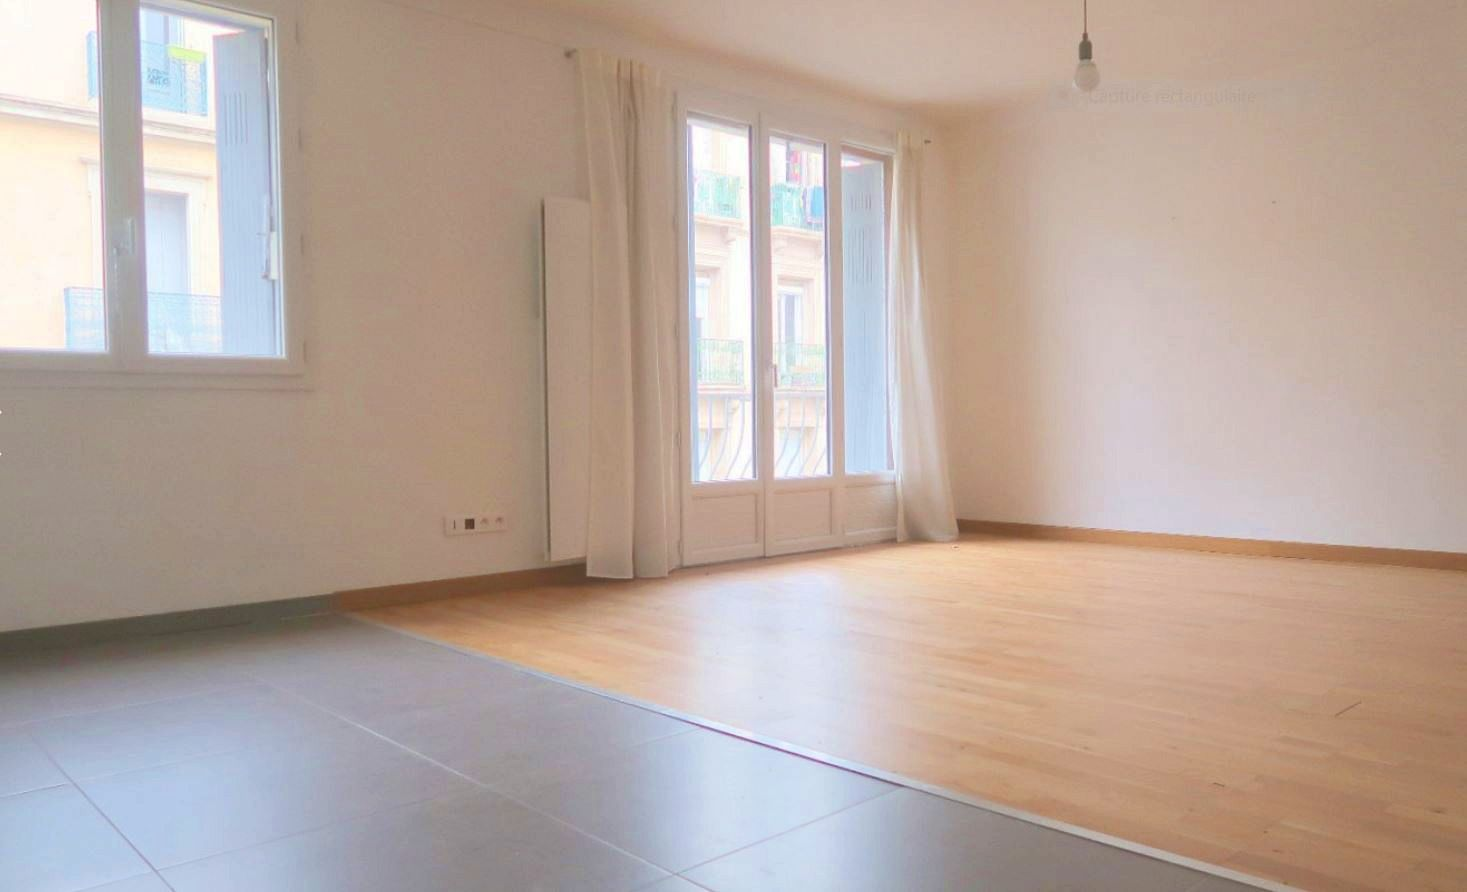 Vends appartement T3 68m² 2chambres - Montpellier (34)